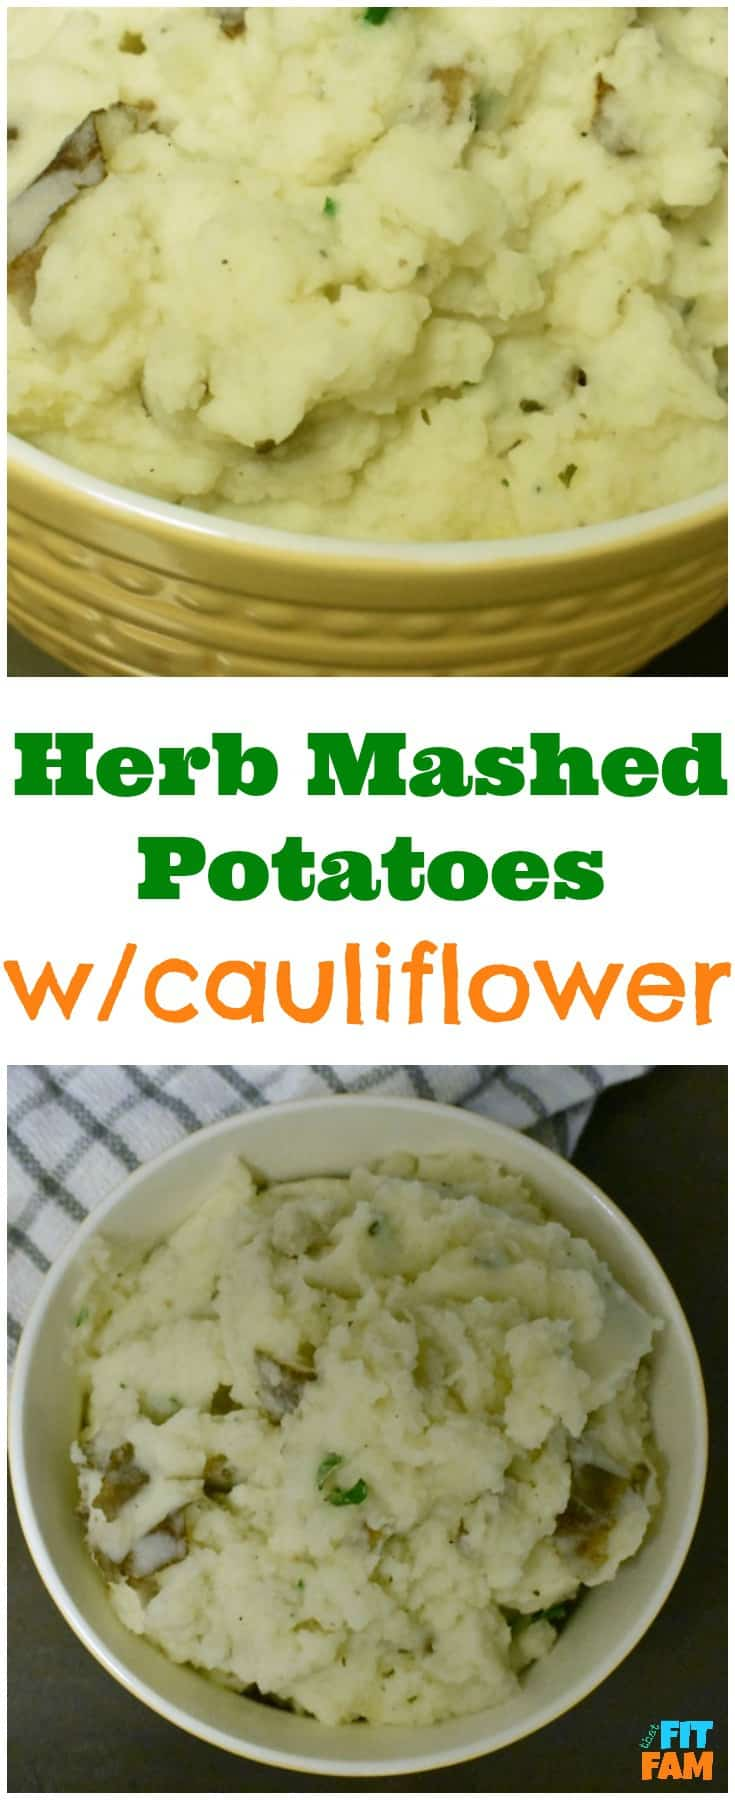 Healthy herb mashed potatoes with mashed cauliflower mixed in. Your kids won't even know they're eating extra veggies! Such a yummy dinner side!